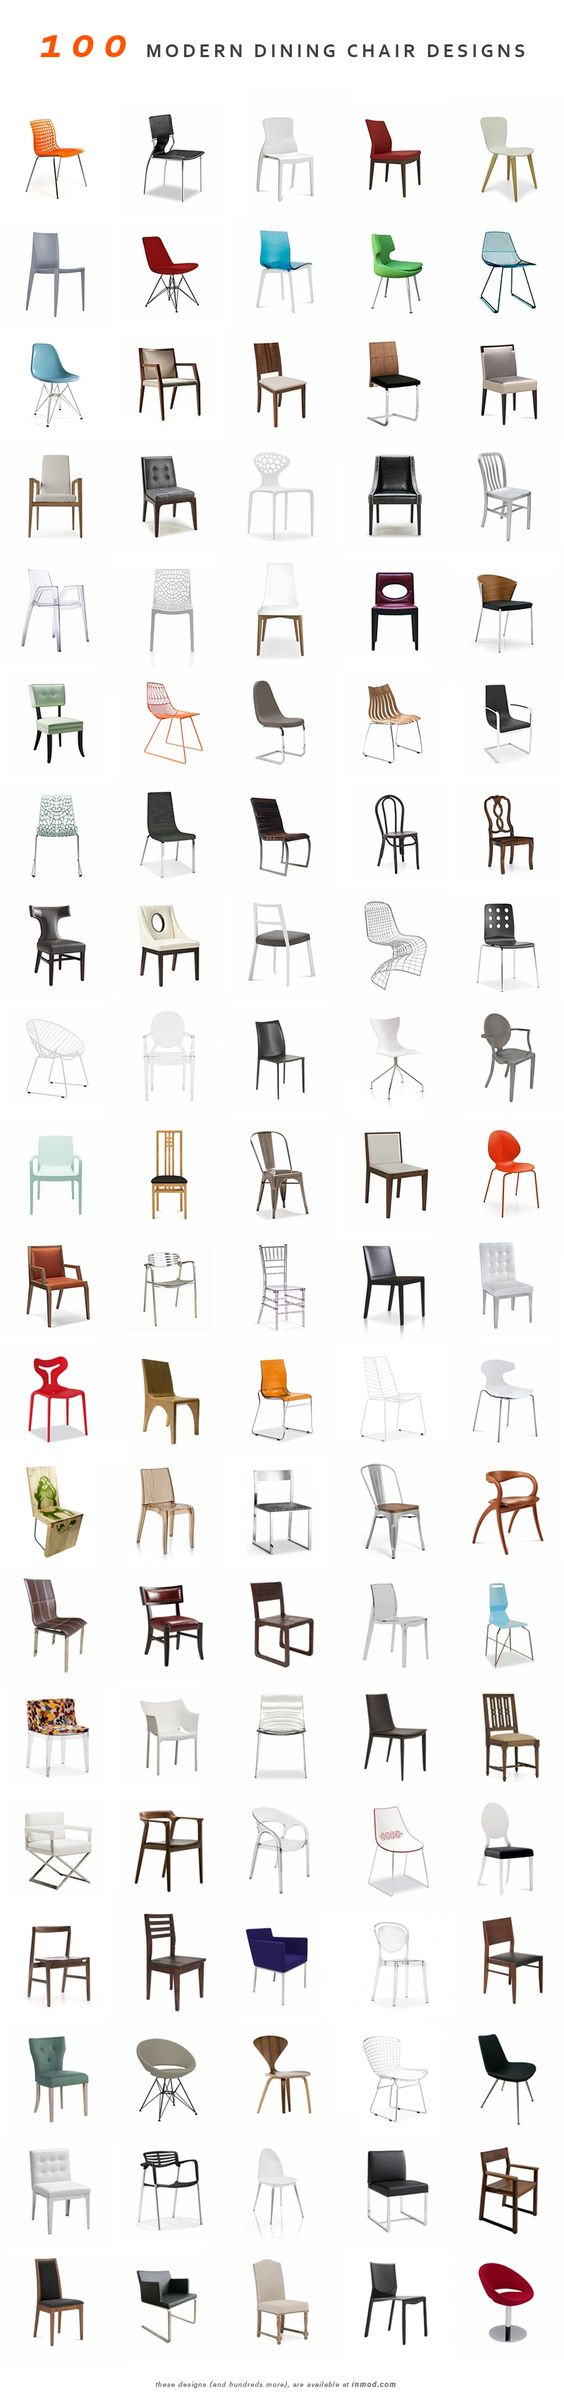 mexico dining chairs to look modern chairs chairs modern dining chairs